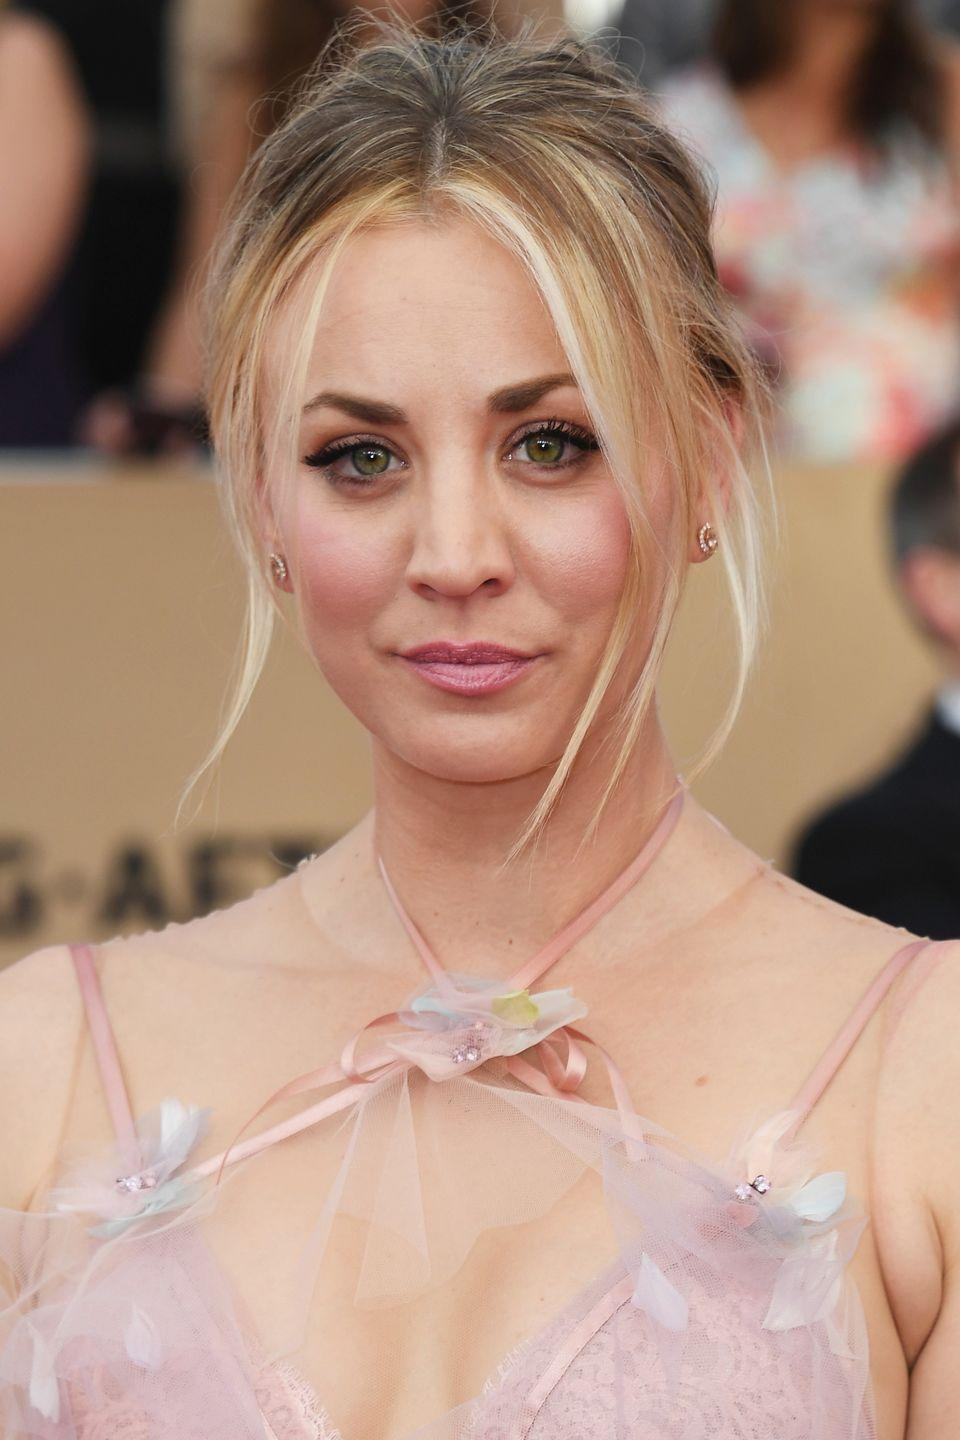 "<p>Kaley Cuoco revealed to <a href=""https://www.womenshealthmag.com/life/a19924918/kaley-cuoco-plastic-surgery/"" rel=""nofollow noopener"" target=""_blank"" data-ylk=""slk:Women's Health US"" class=""link rapid-noclick-resp"">Women's Health US</a> that having a breast augmentation was ""the best thing I ever did"". The actress, who has also spoken about having rhinoplasty and a round of fillers, also commented: ""As much as you want to love your inner self, I'm sorry, you also want to look good. I don't think you should do it for a man or anyone else, but if it makes you feel confident, that's amazing.""</p>"